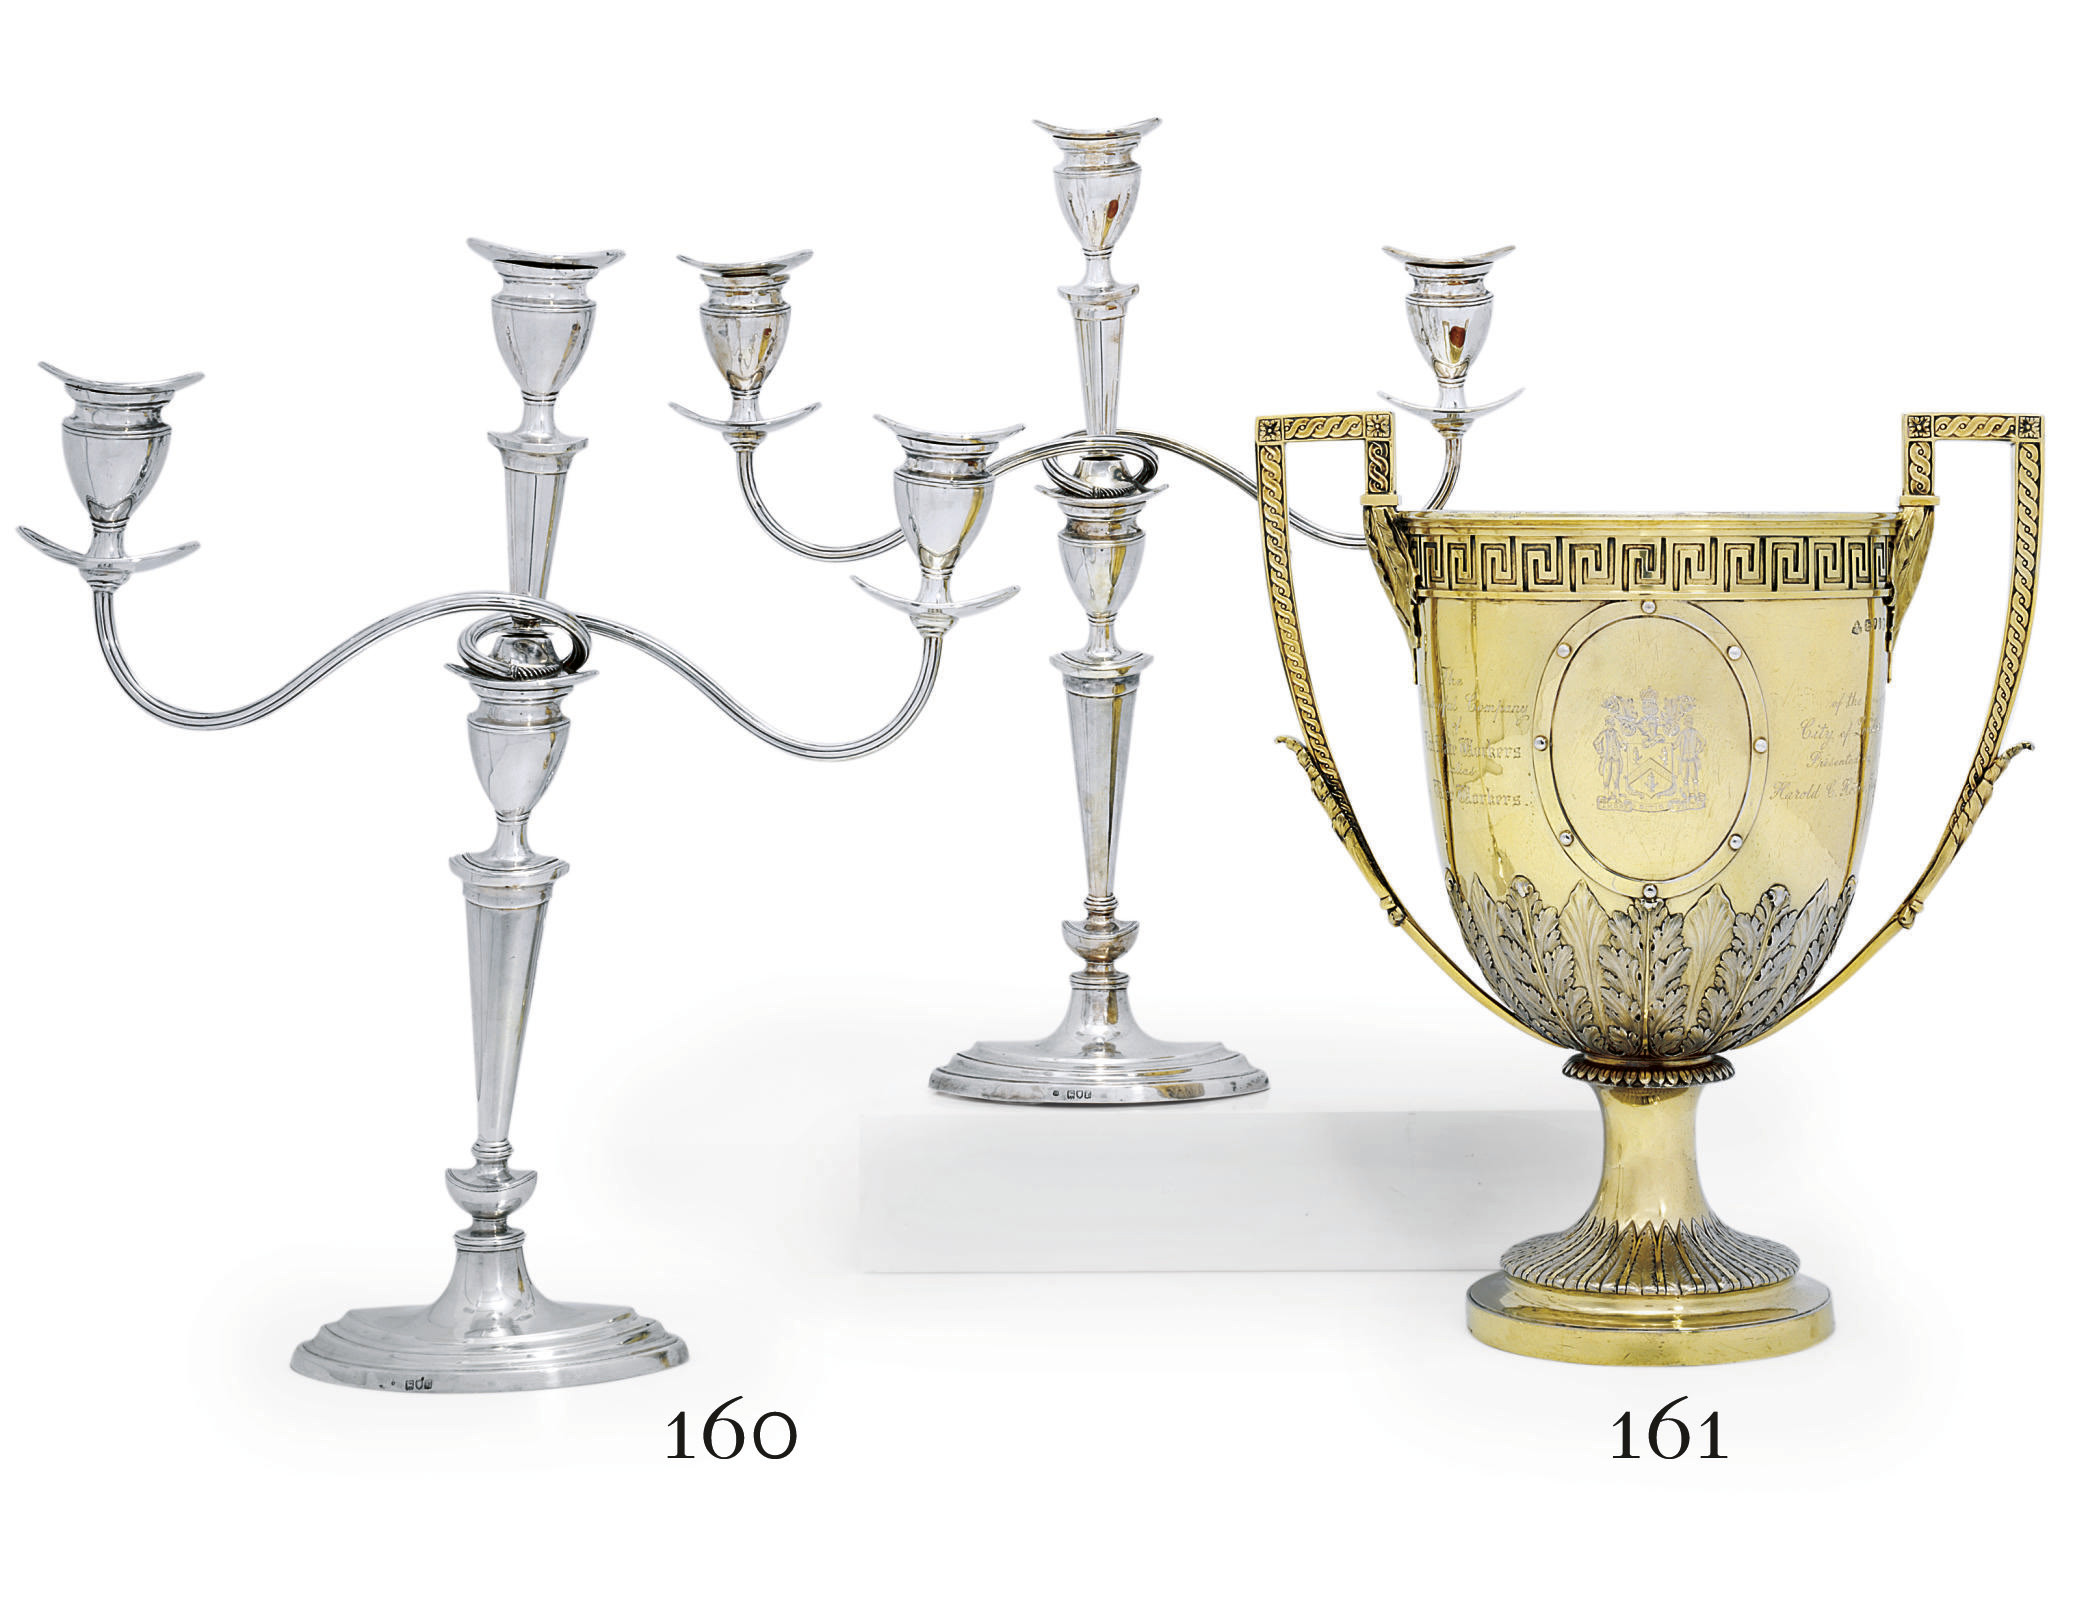 A PAIR OF EDWARD VII SILVER THREE-LIGHT CANDLEABRA